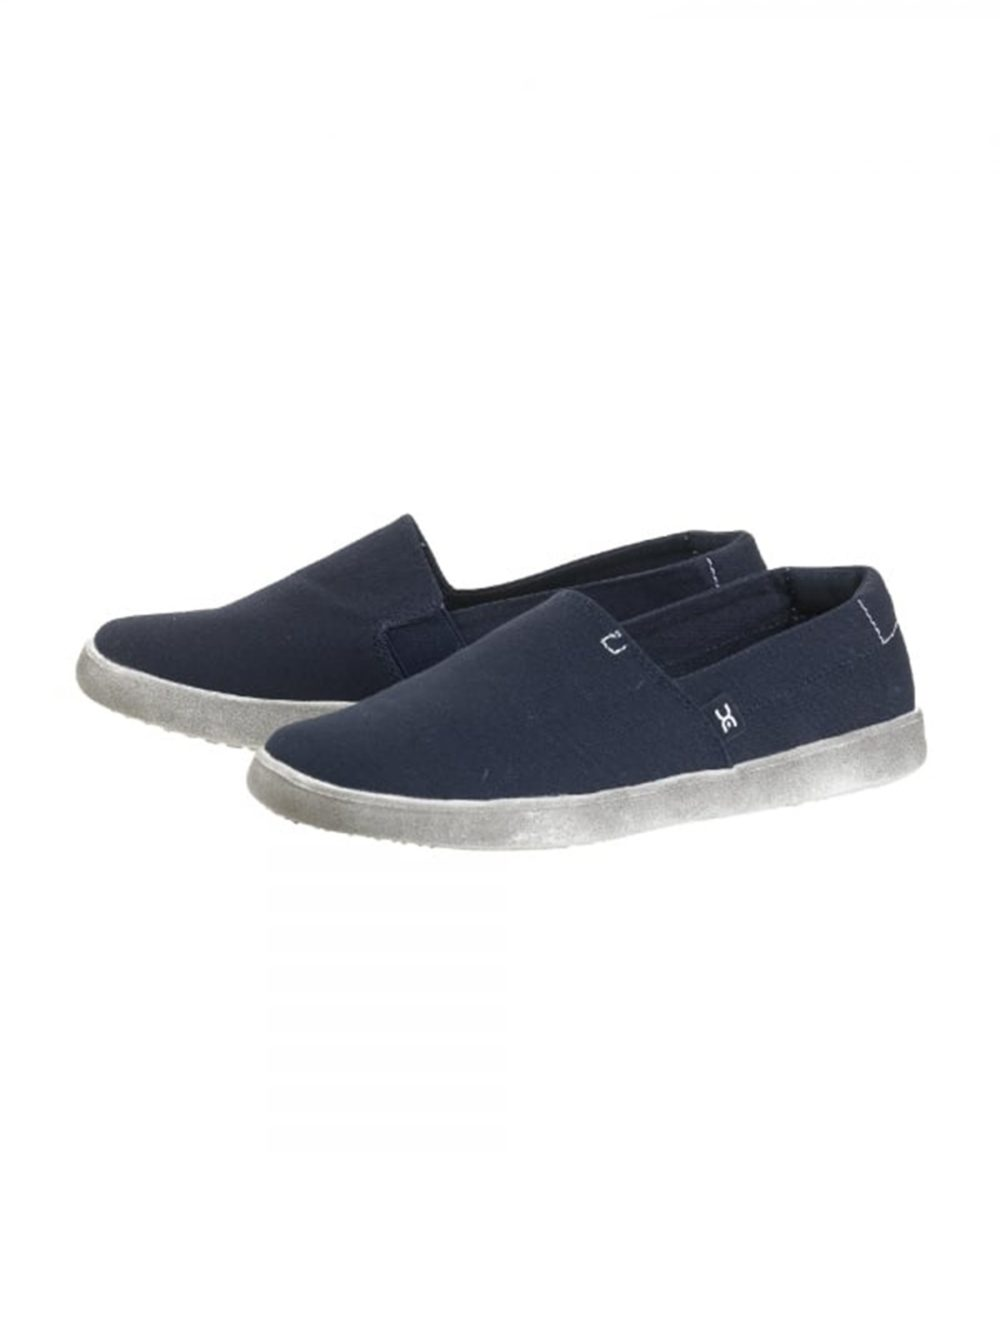 Carly Navy Canvas Hey Dude Shoes Katie Kerr Women's Clothing